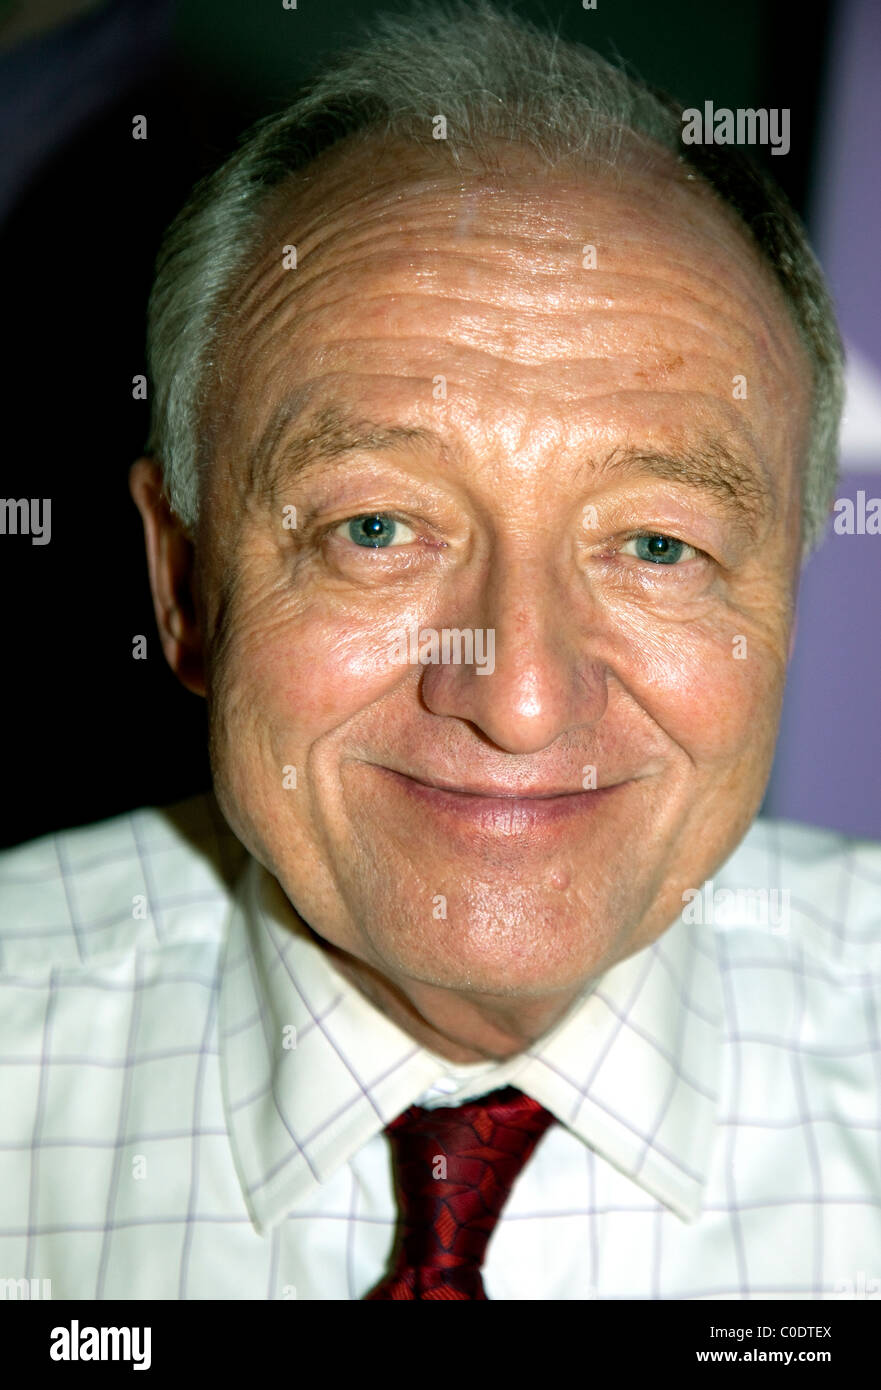 Ken Livingstone at There Is An Alternative conference, London - Stock Image